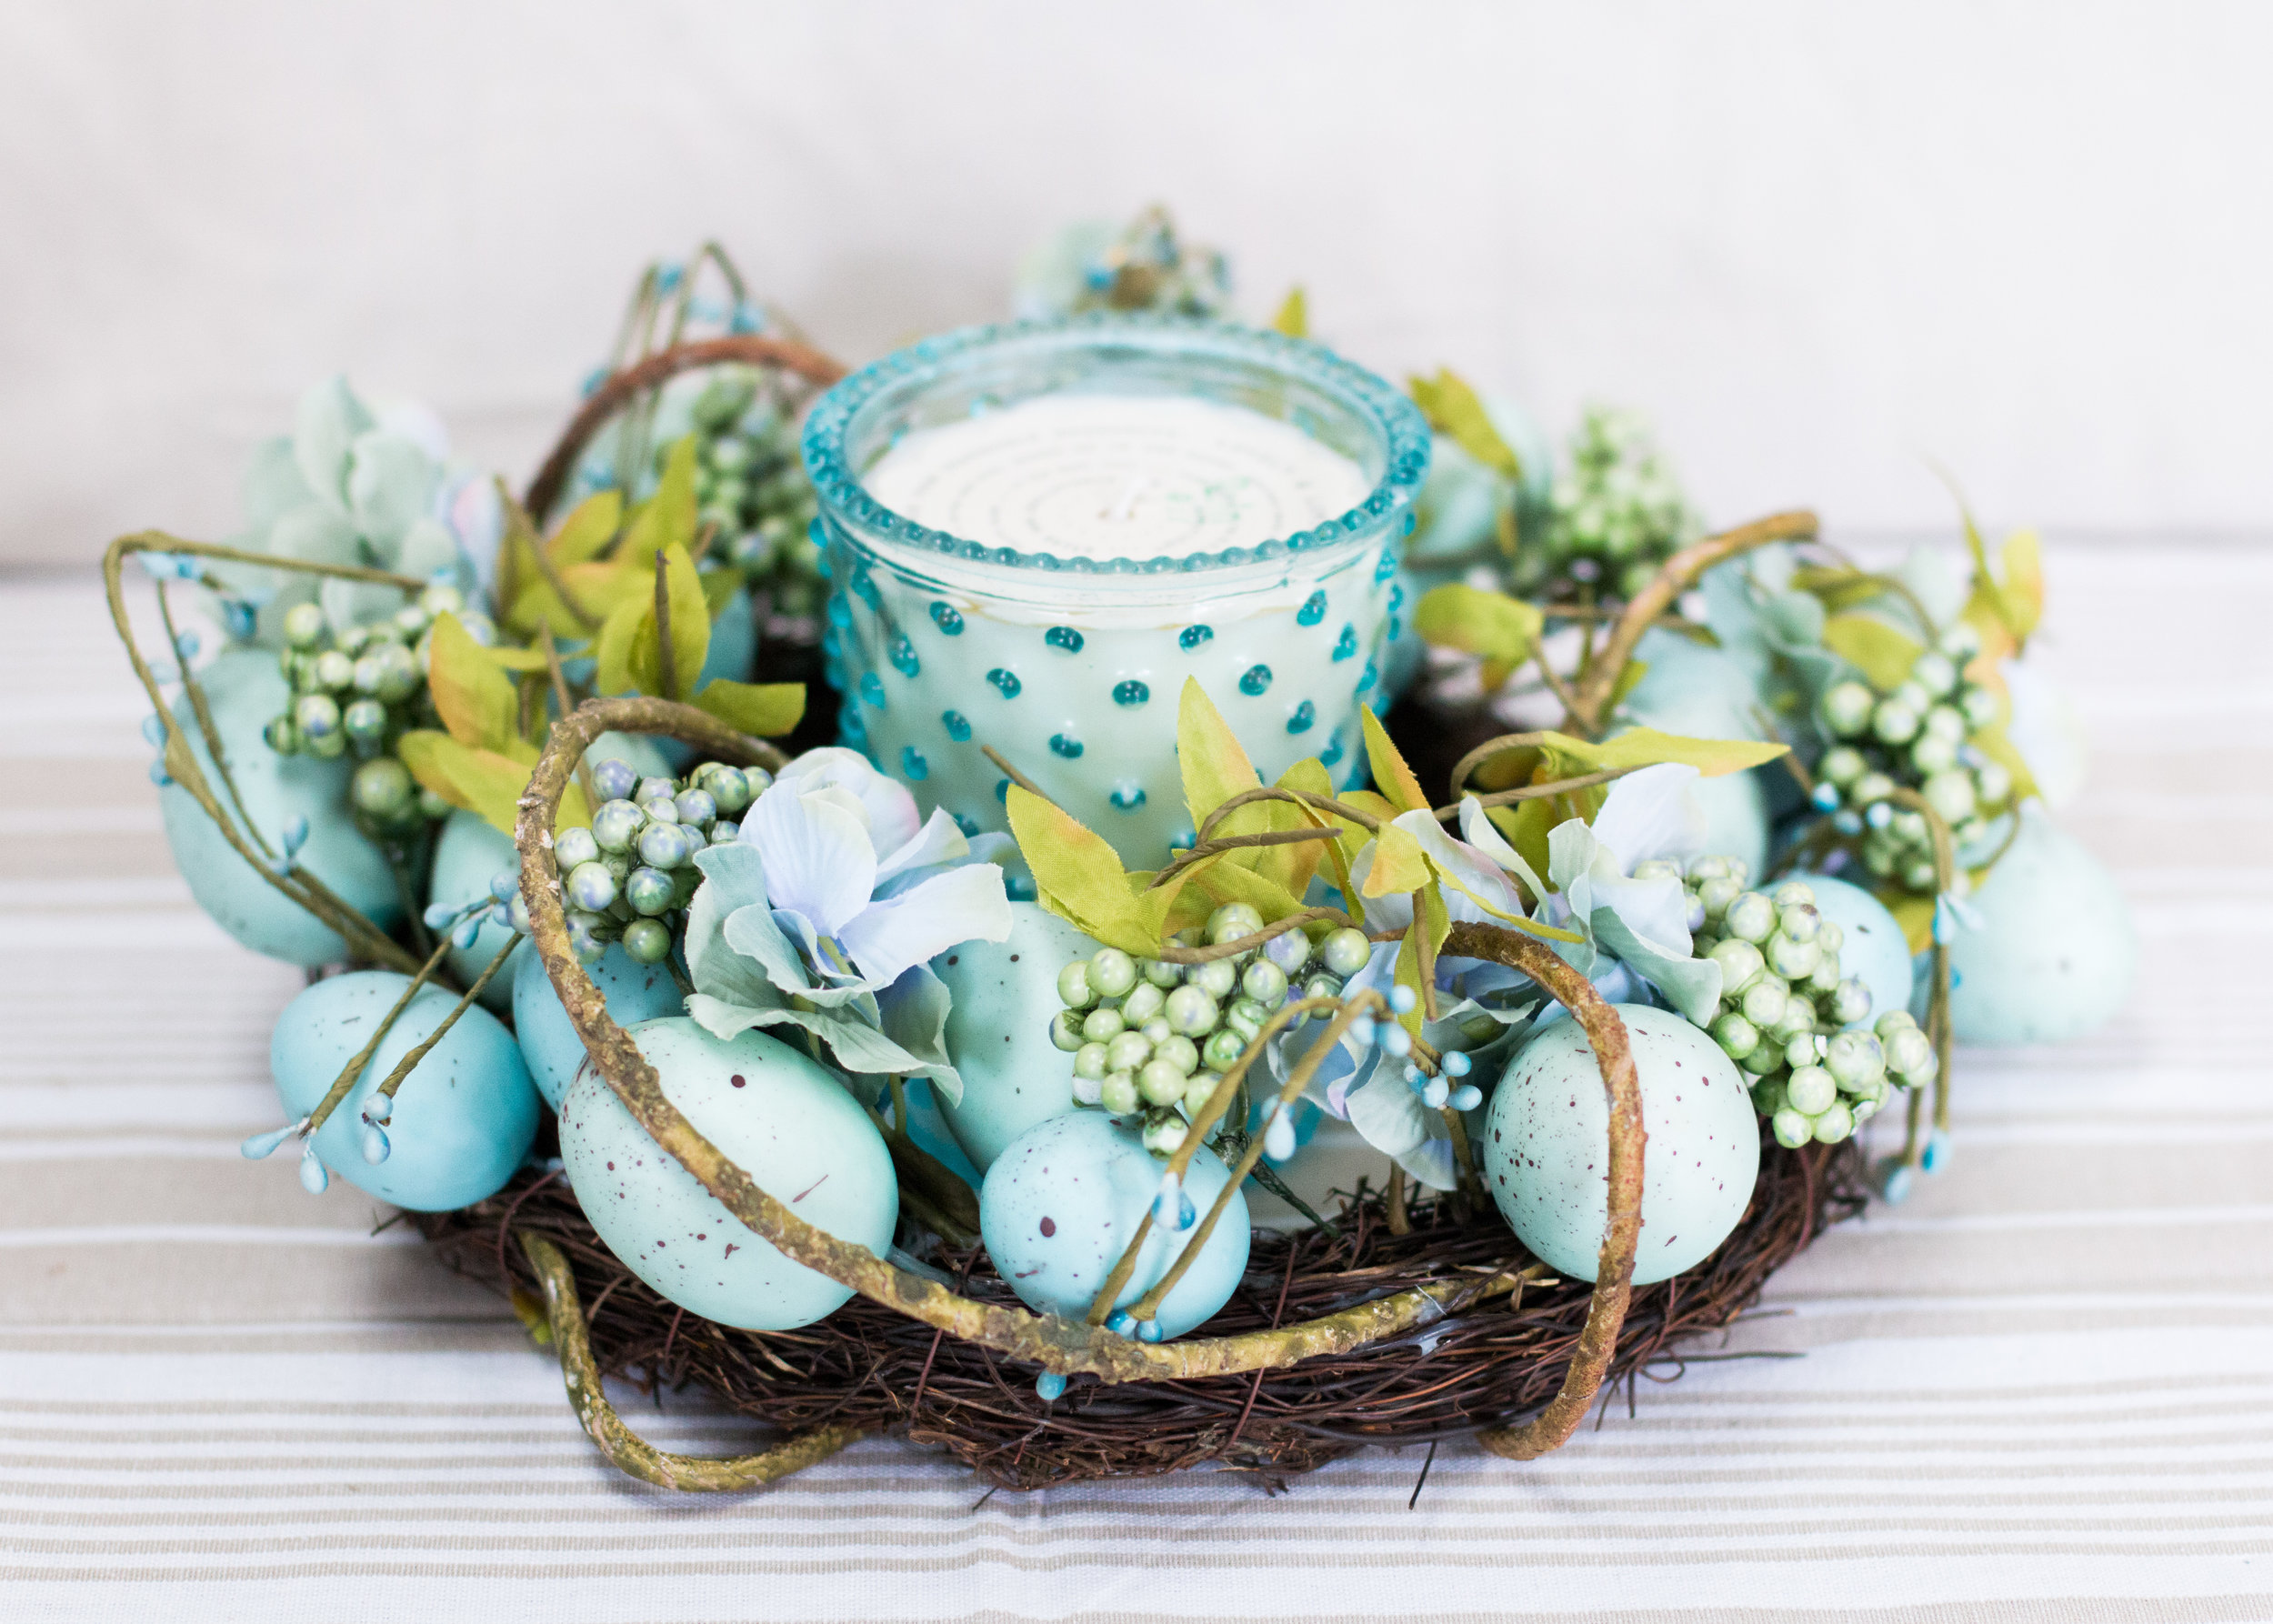 Our blue egg wreaths are the perfect spring decor accent - try it on a table top insead of hung on the wall! A sweet accompaniment to our hobnail glass candles.